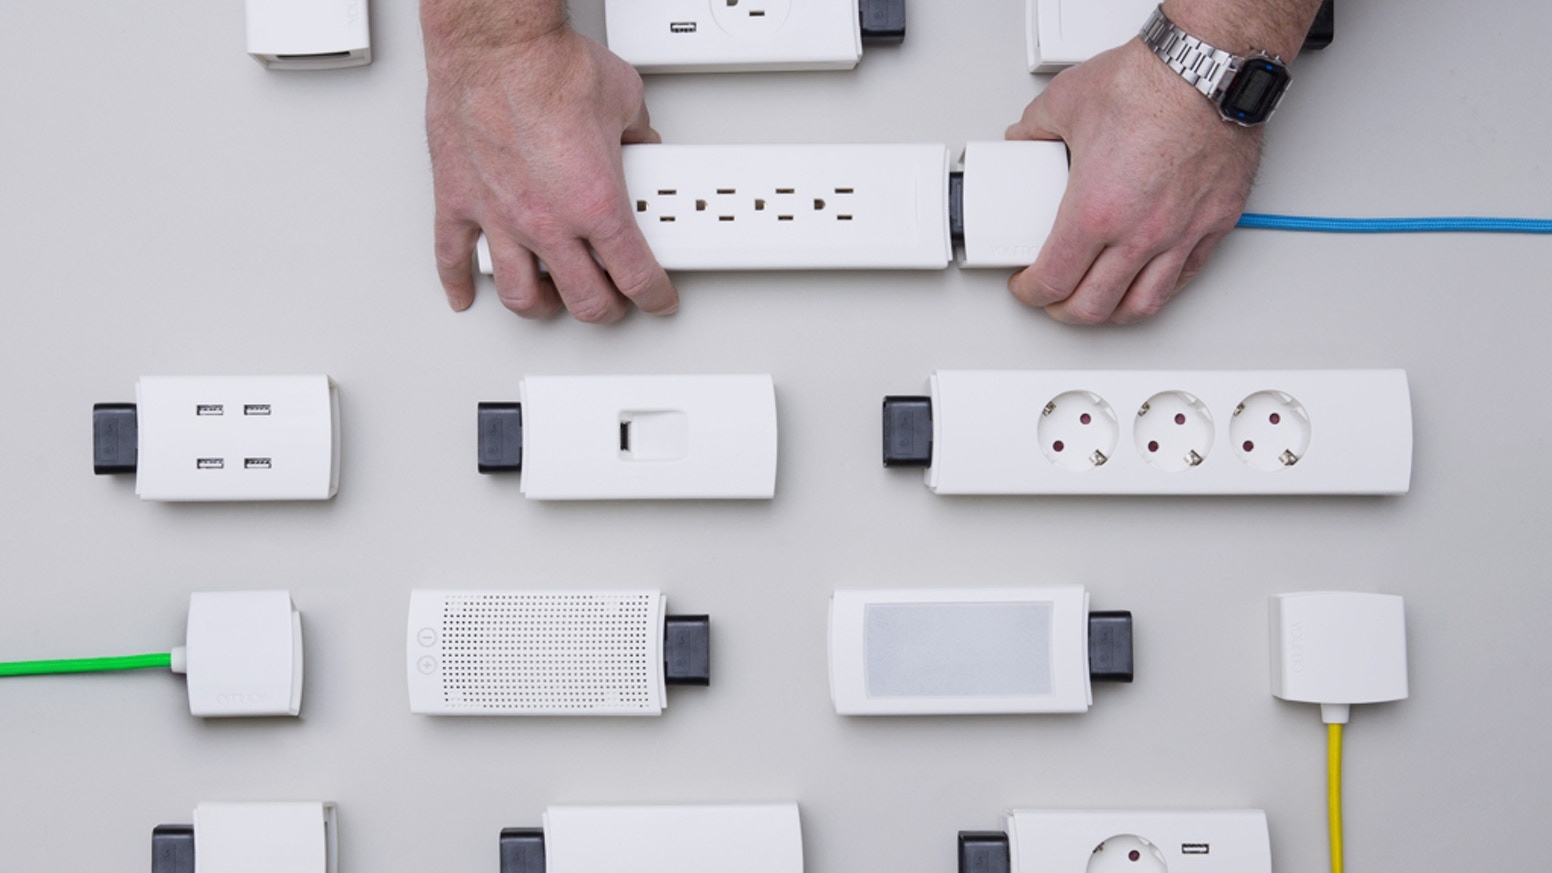 Multi-power charging that is smarter, stylish and designed for you.